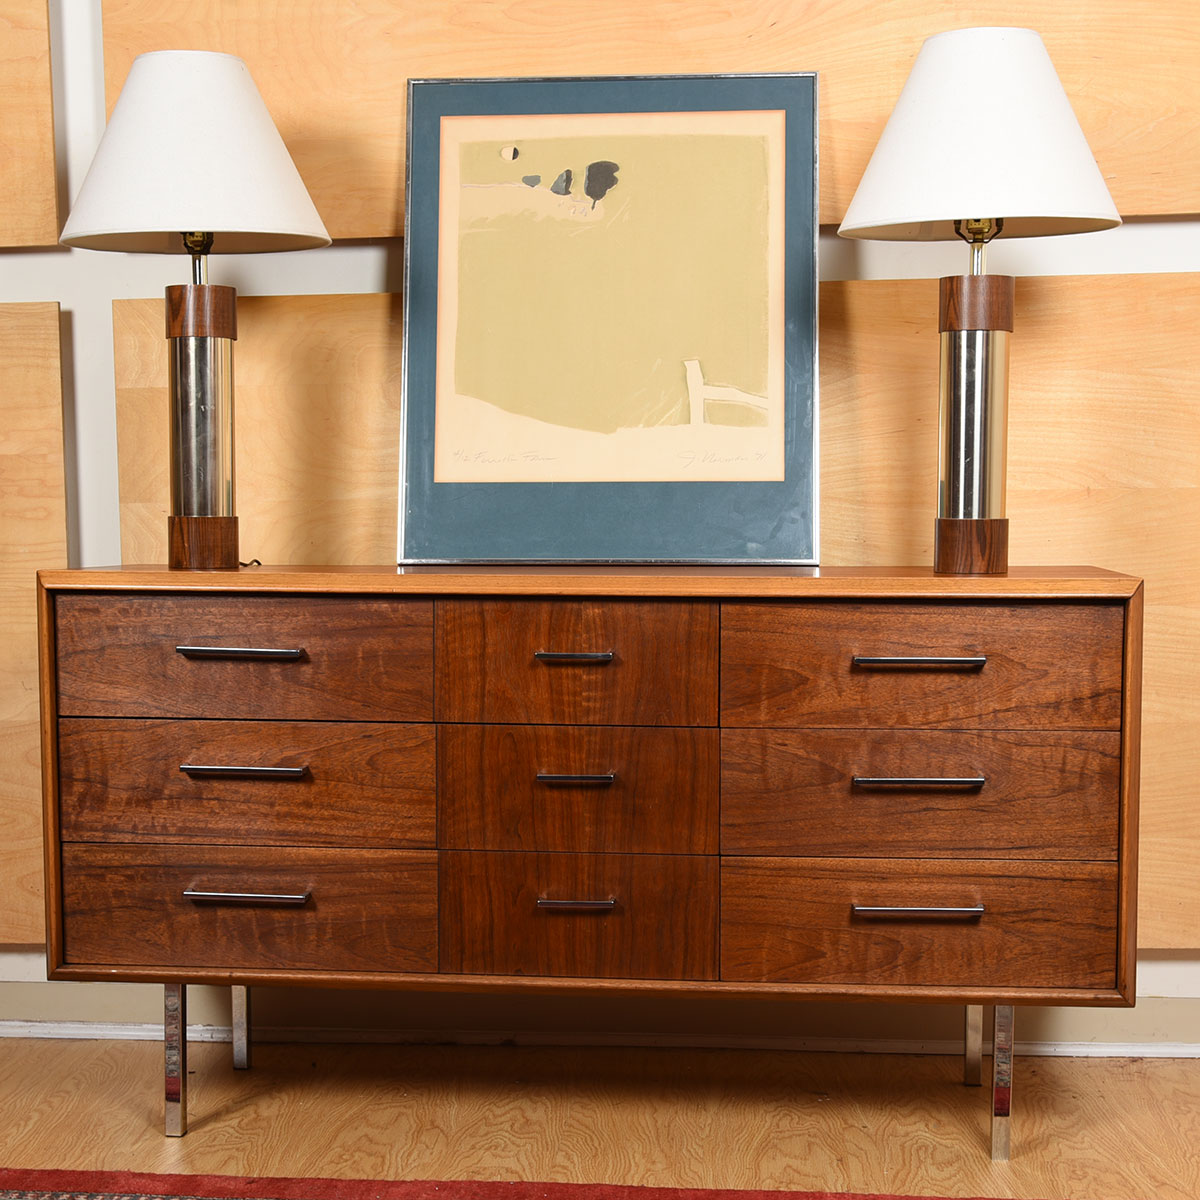 Mid Century Walnut Dresser / Storage Chest w/ Chrome Legs & Pulls